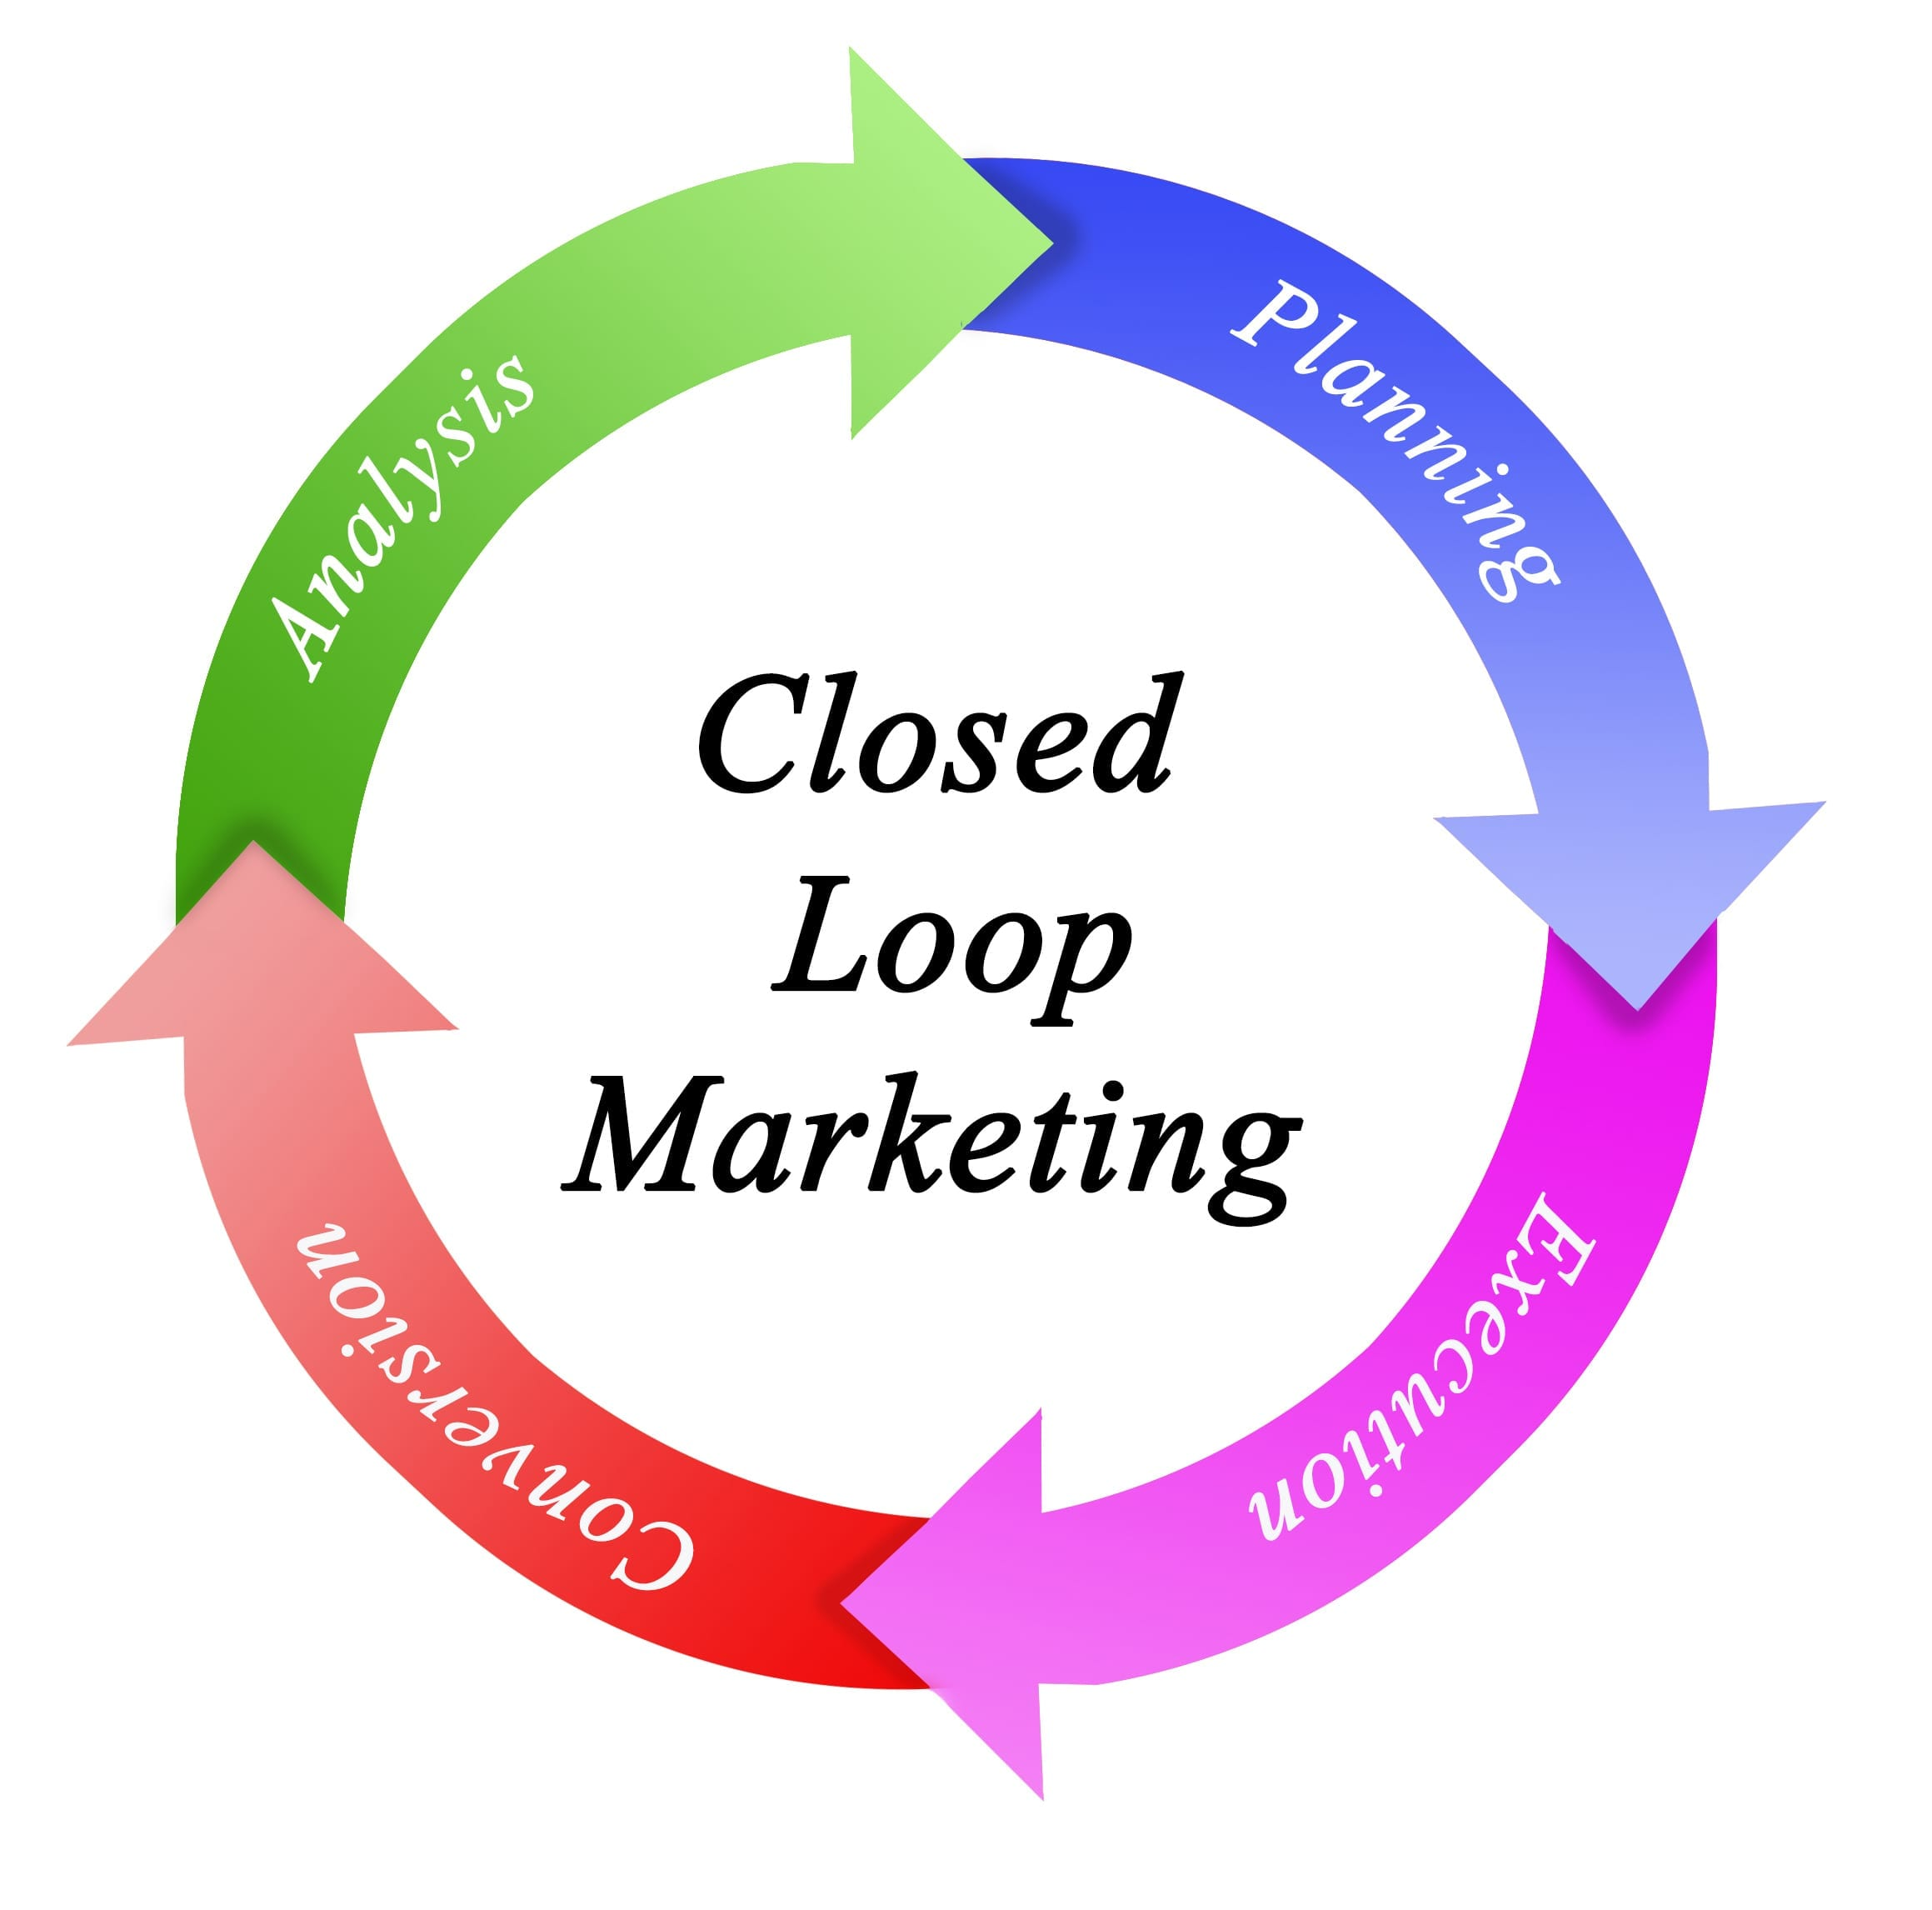 graphic of closed loop marketing circle